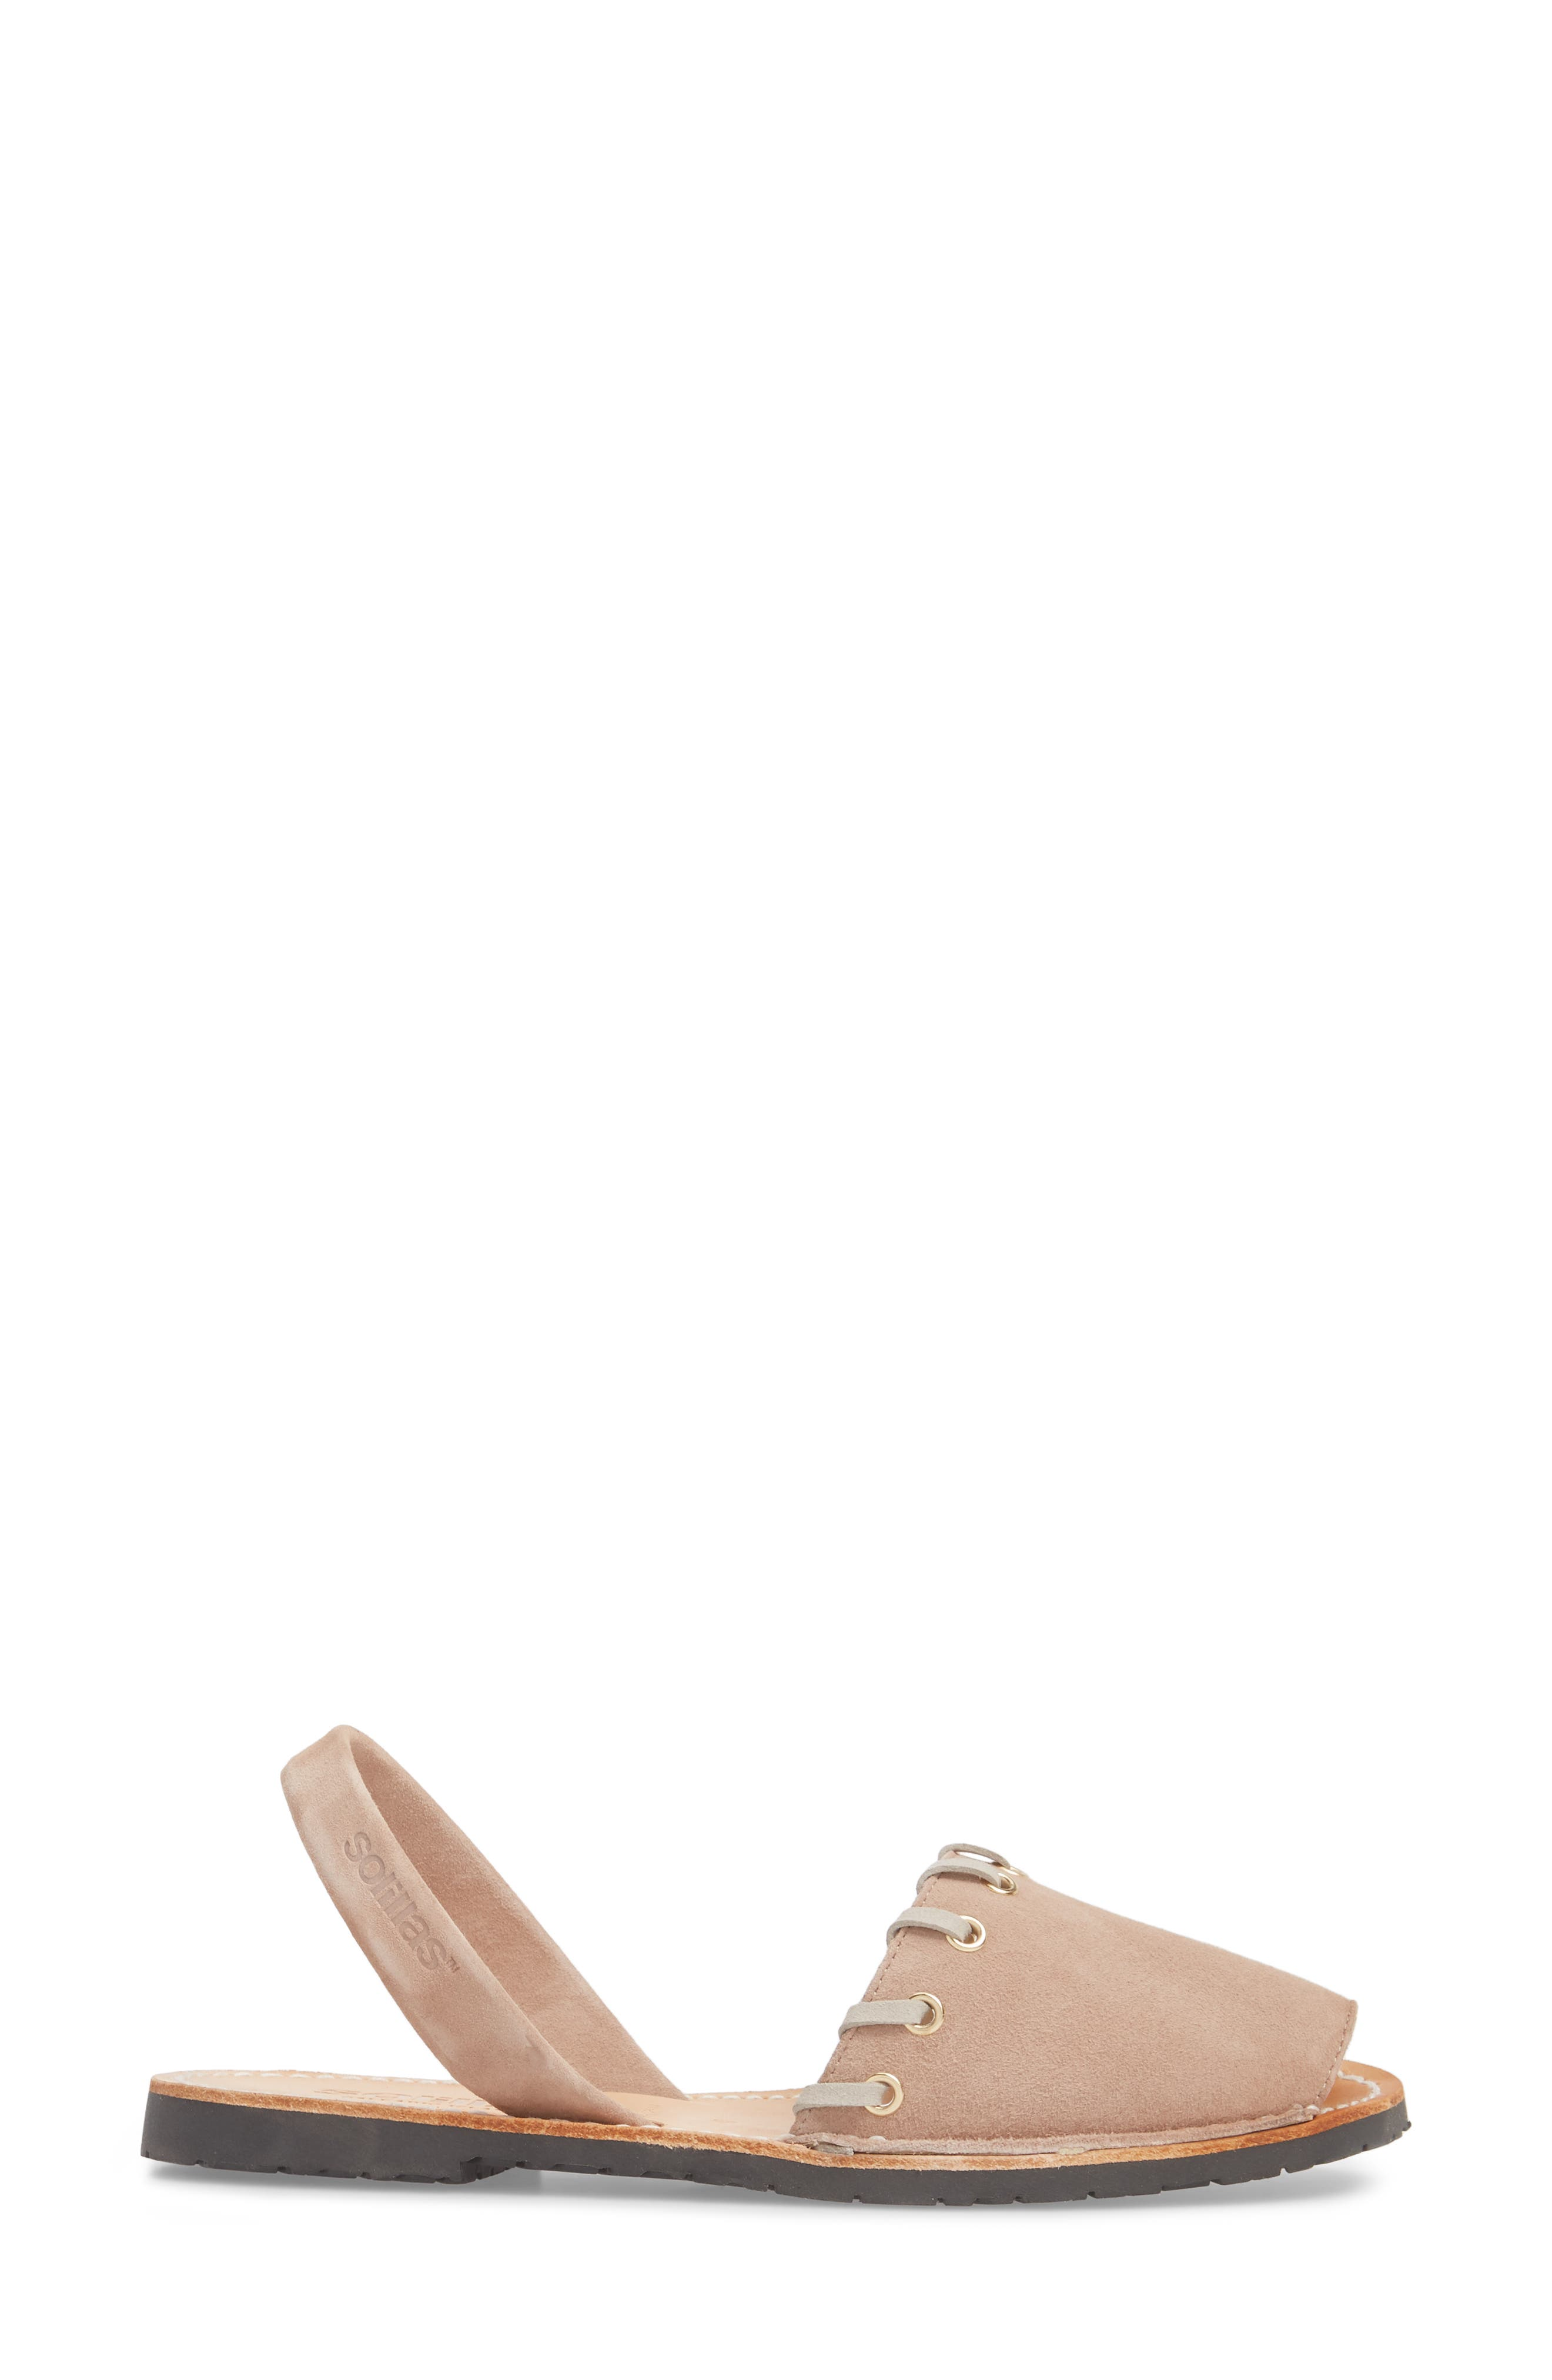 Whipstitched Flat Sandal,                             Alternate thumbnail 3, color,                             060